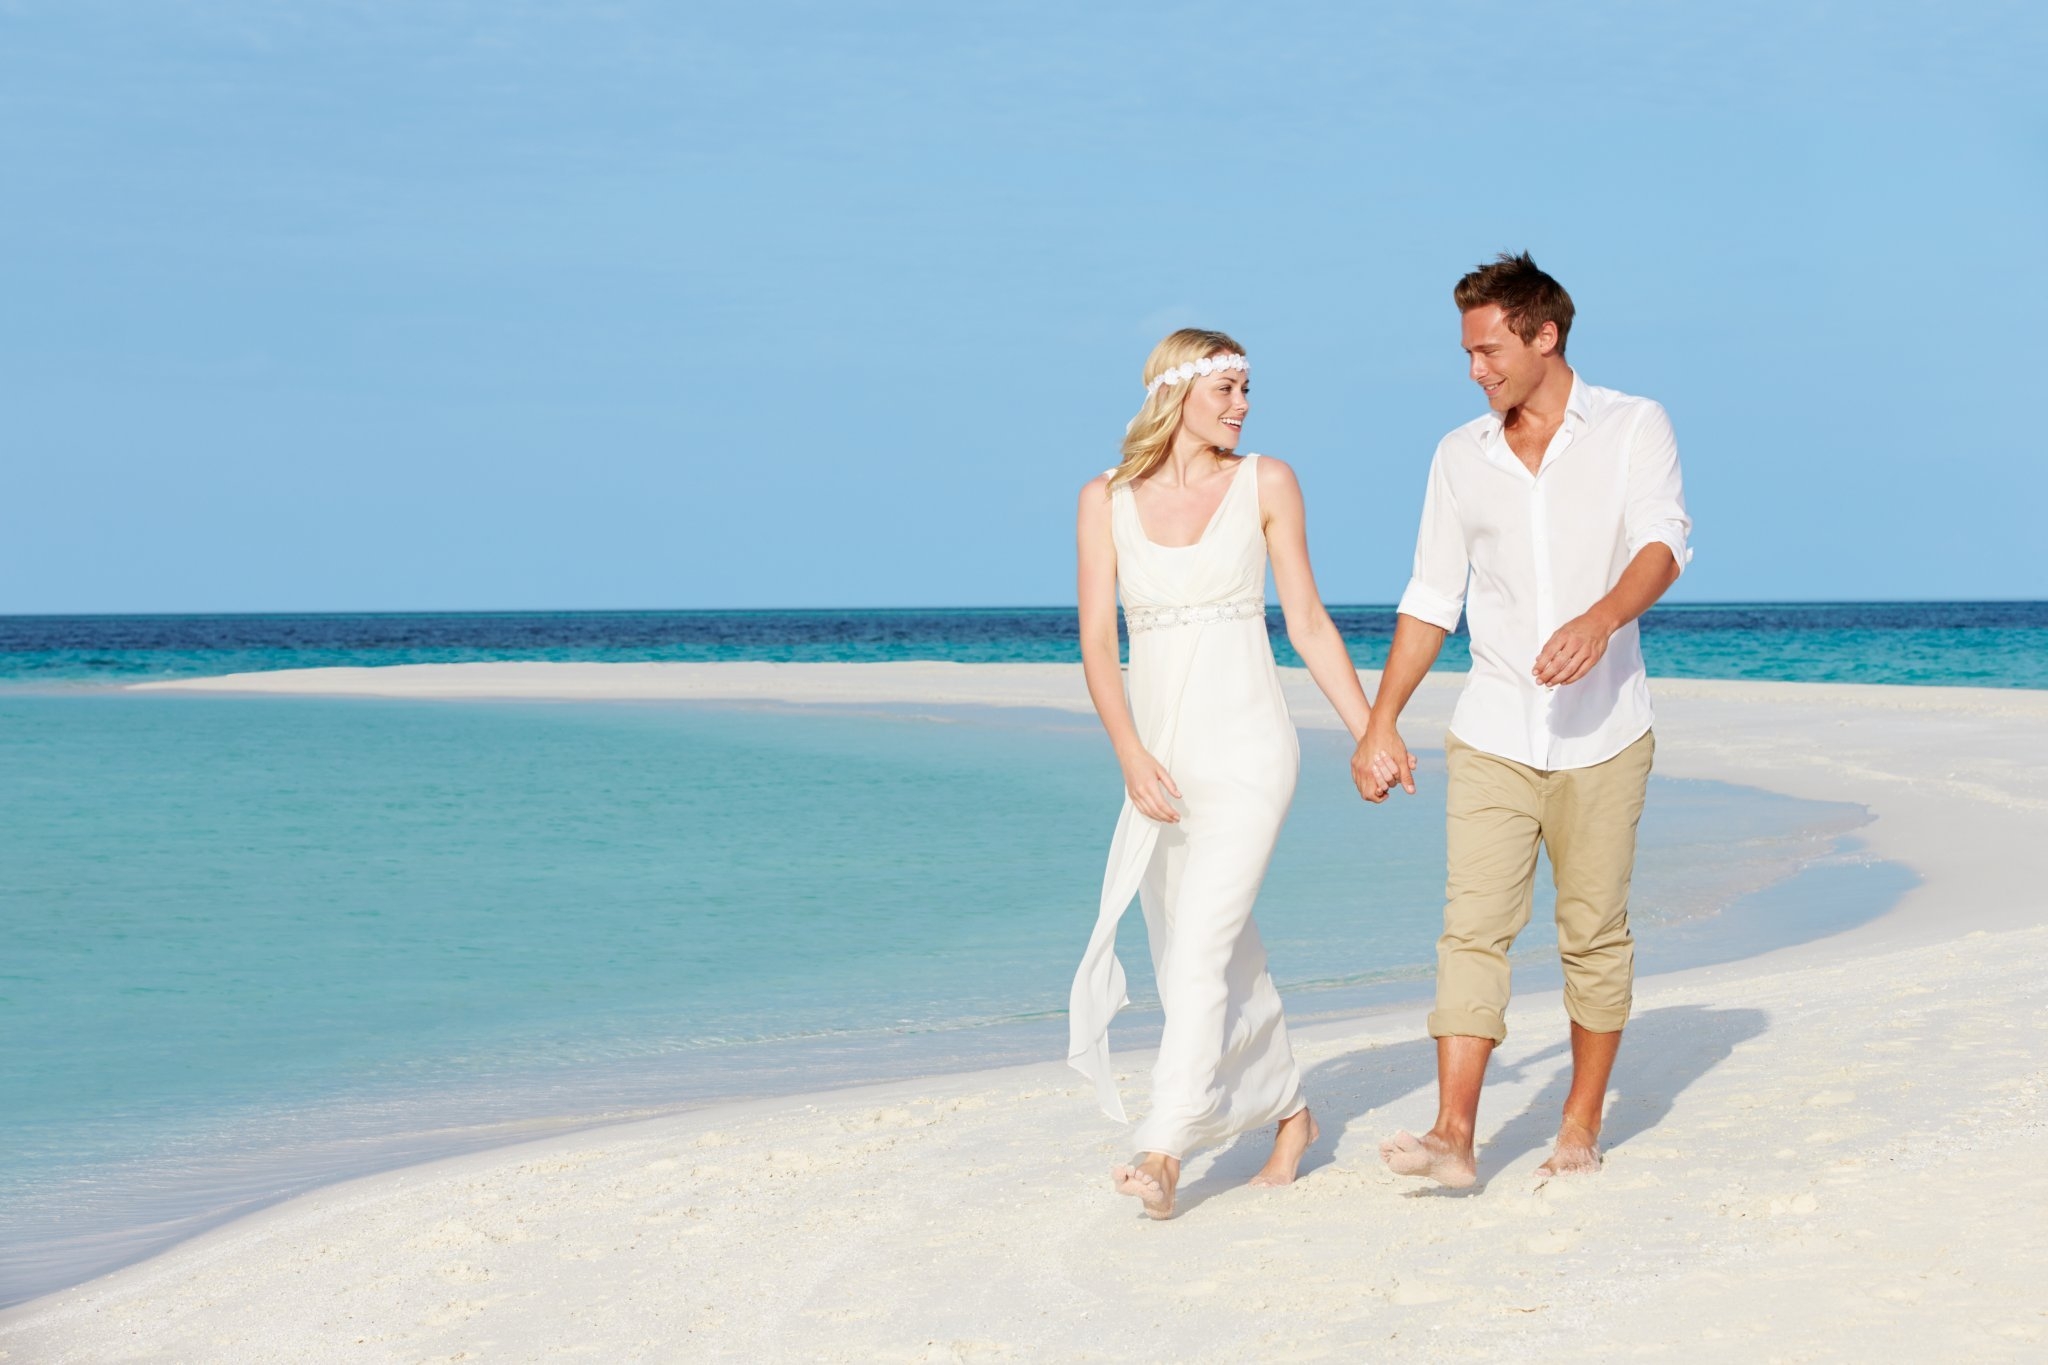 Couple At Beautiful Beach Wedding Walking Along Sand Spit Holding Hands